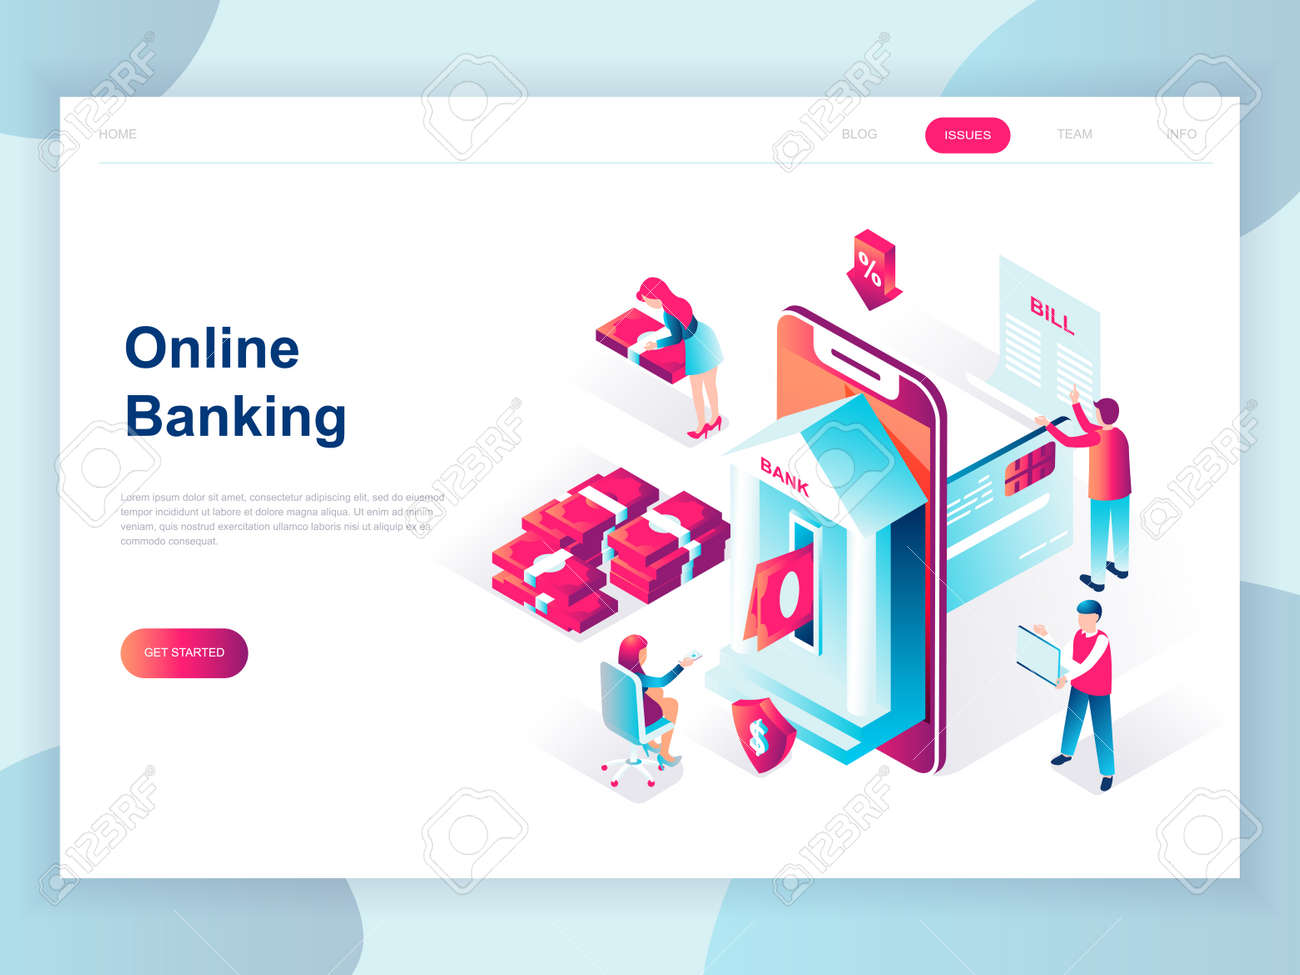 Modern Flat Design Isometric Concept Of Online Banking For Banner Royalty Free Cliparts Vectors And Stock Illustration Image 110091028